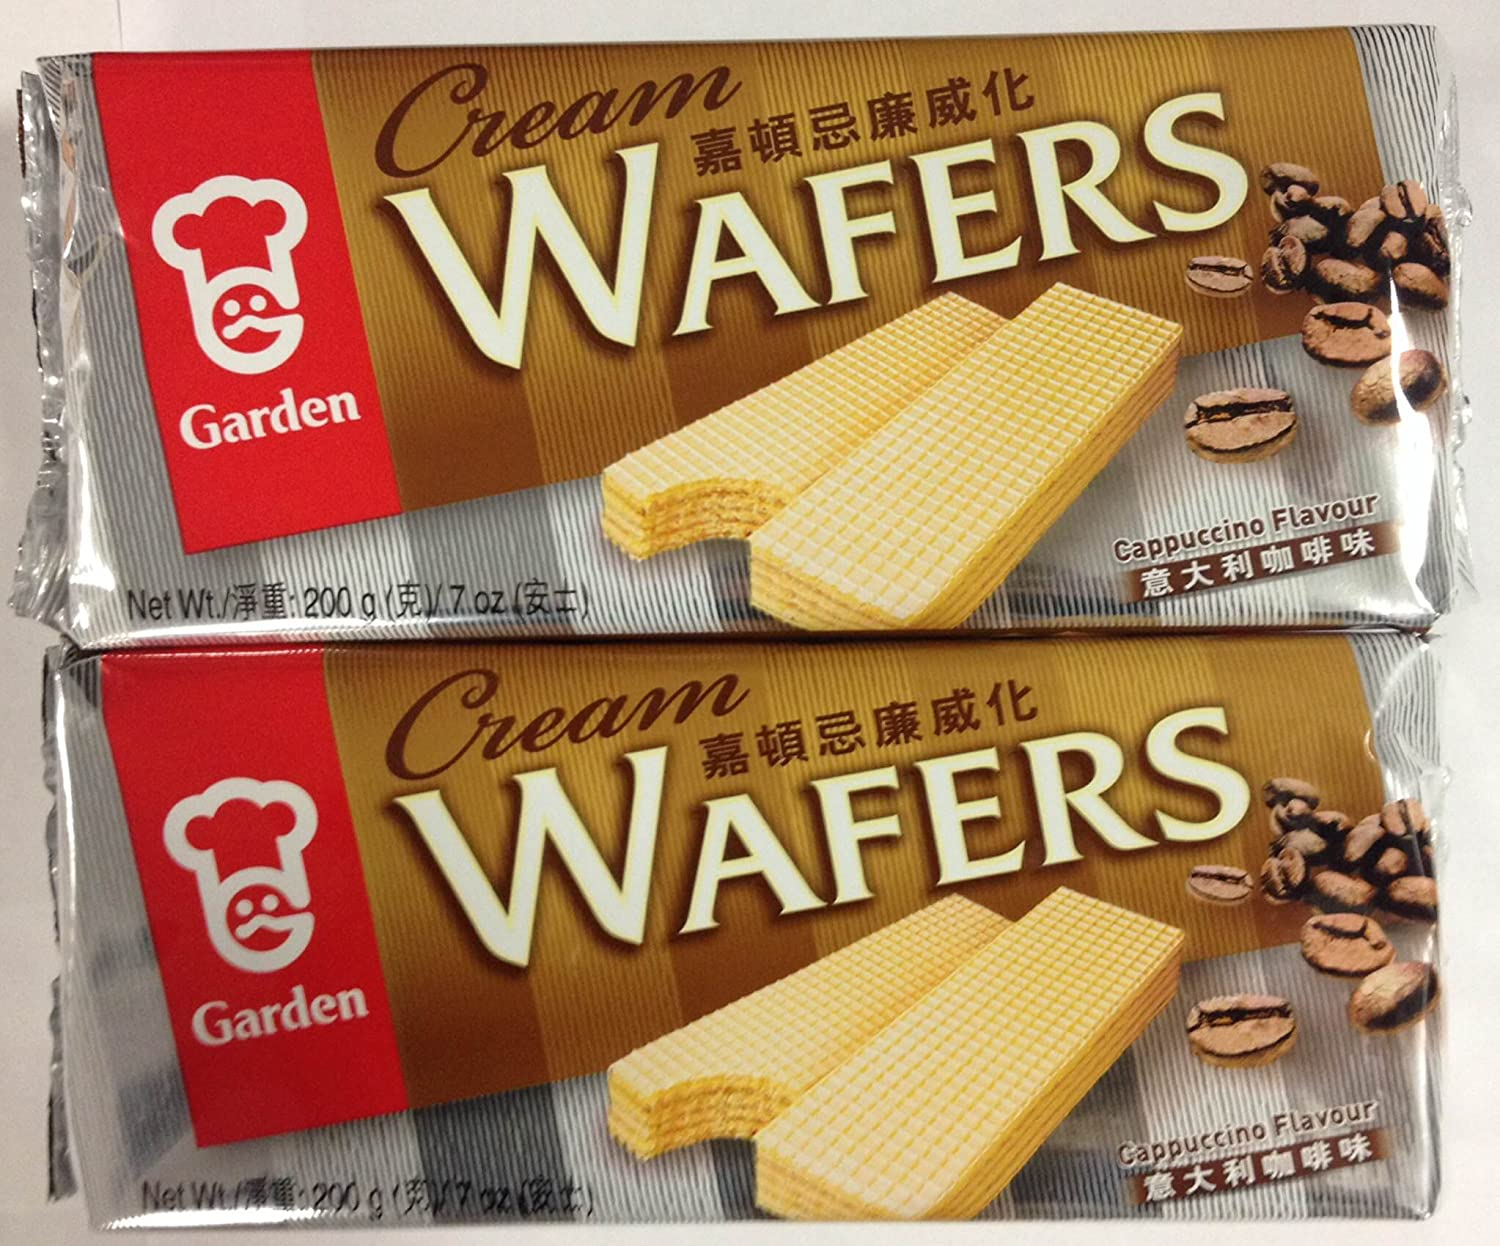 Garden Cream Wafers Cappuccino Flavor - 7 Oz (Pack of 2)